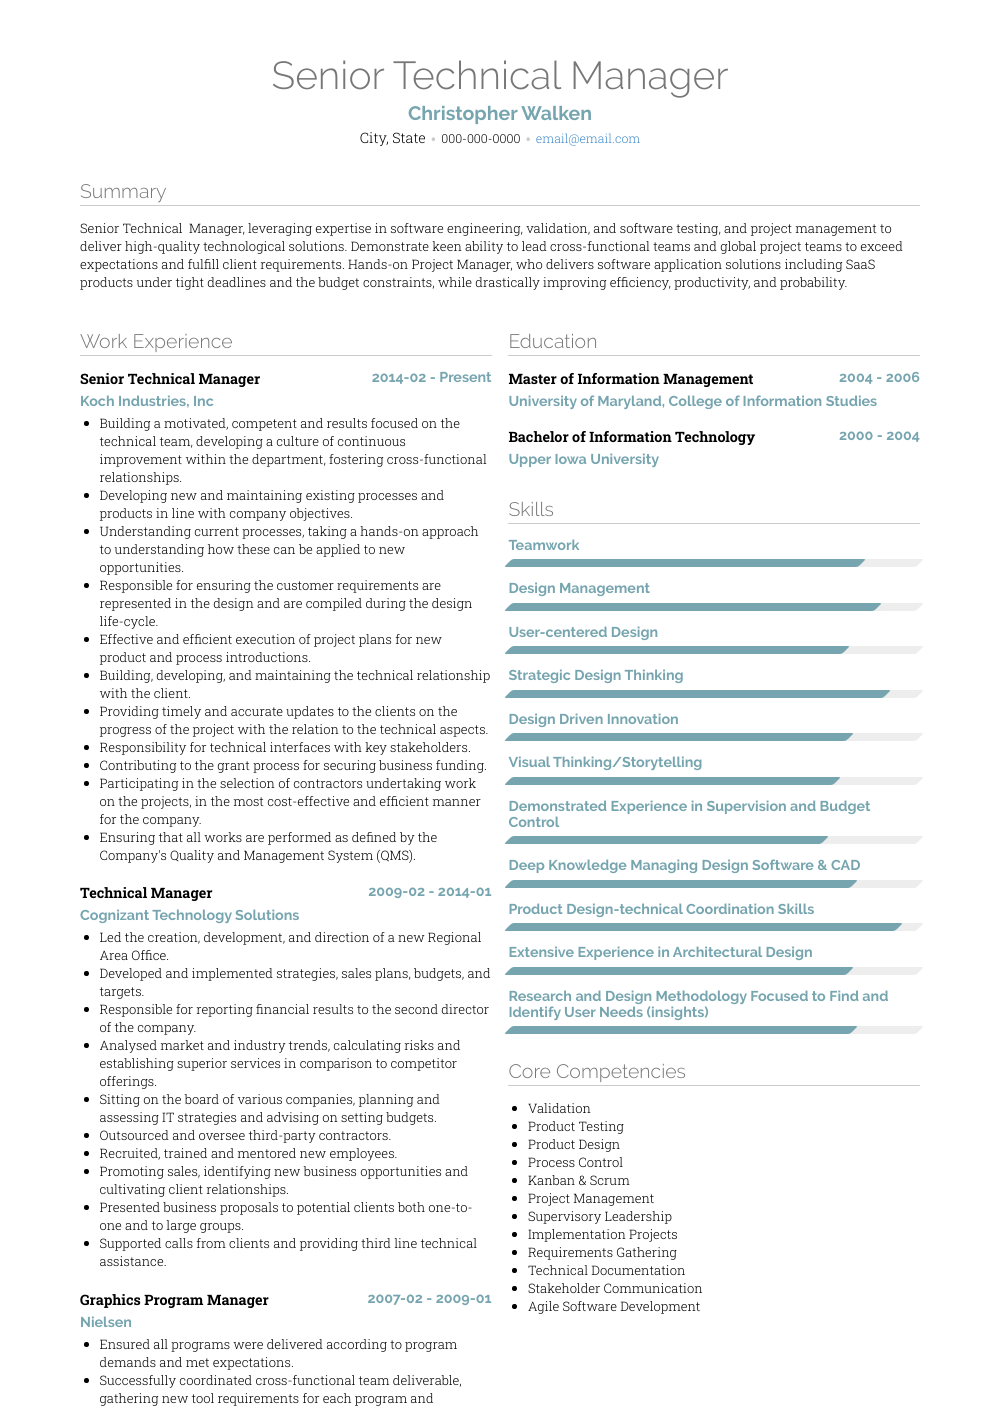 Technical Manager Resume Samples Amp Templates Visualcv